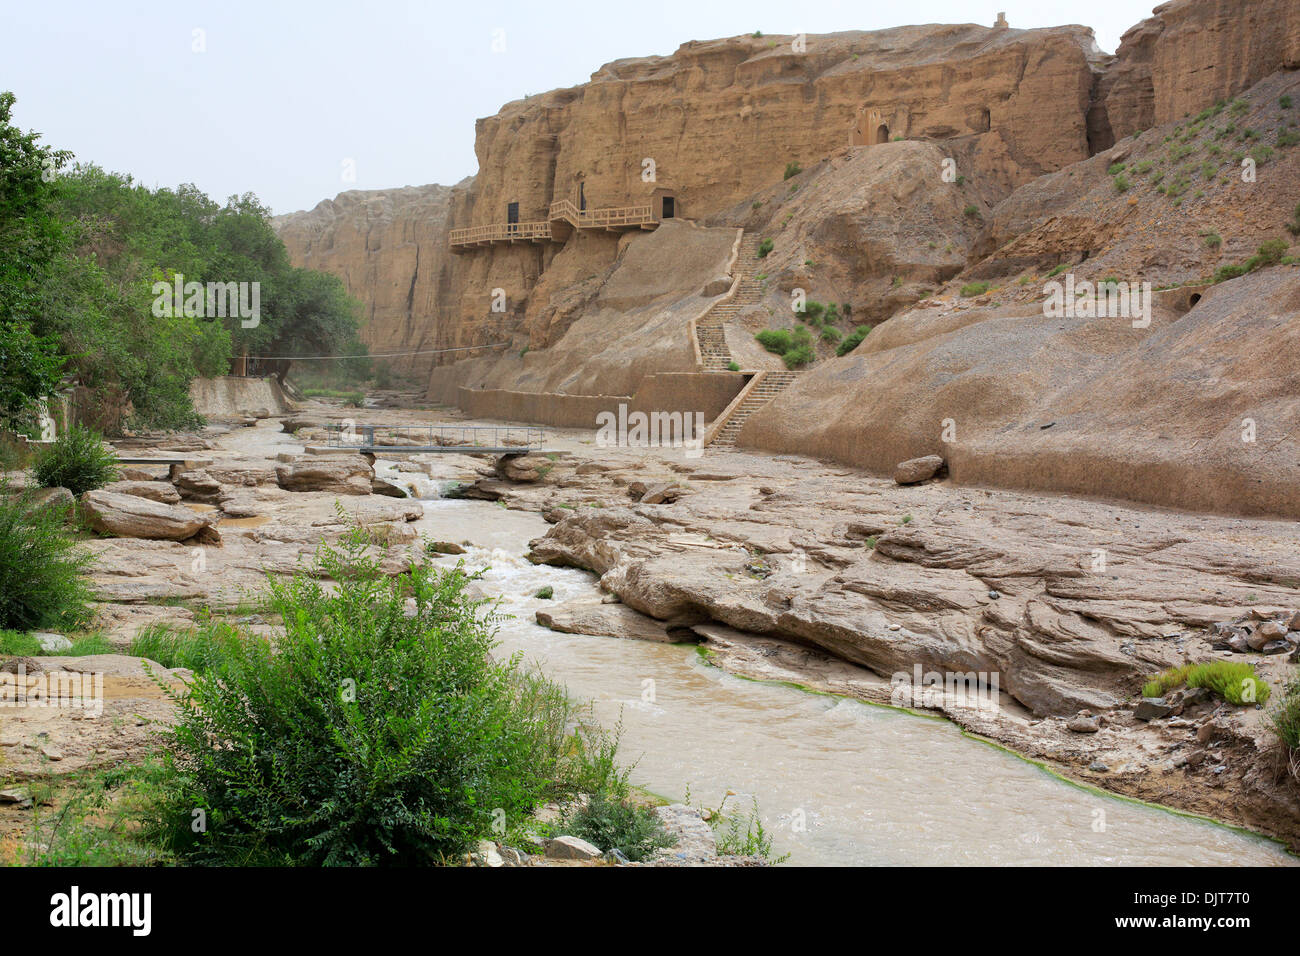 Yuilin valley and grottoes, Gansu province, China - Stock Image